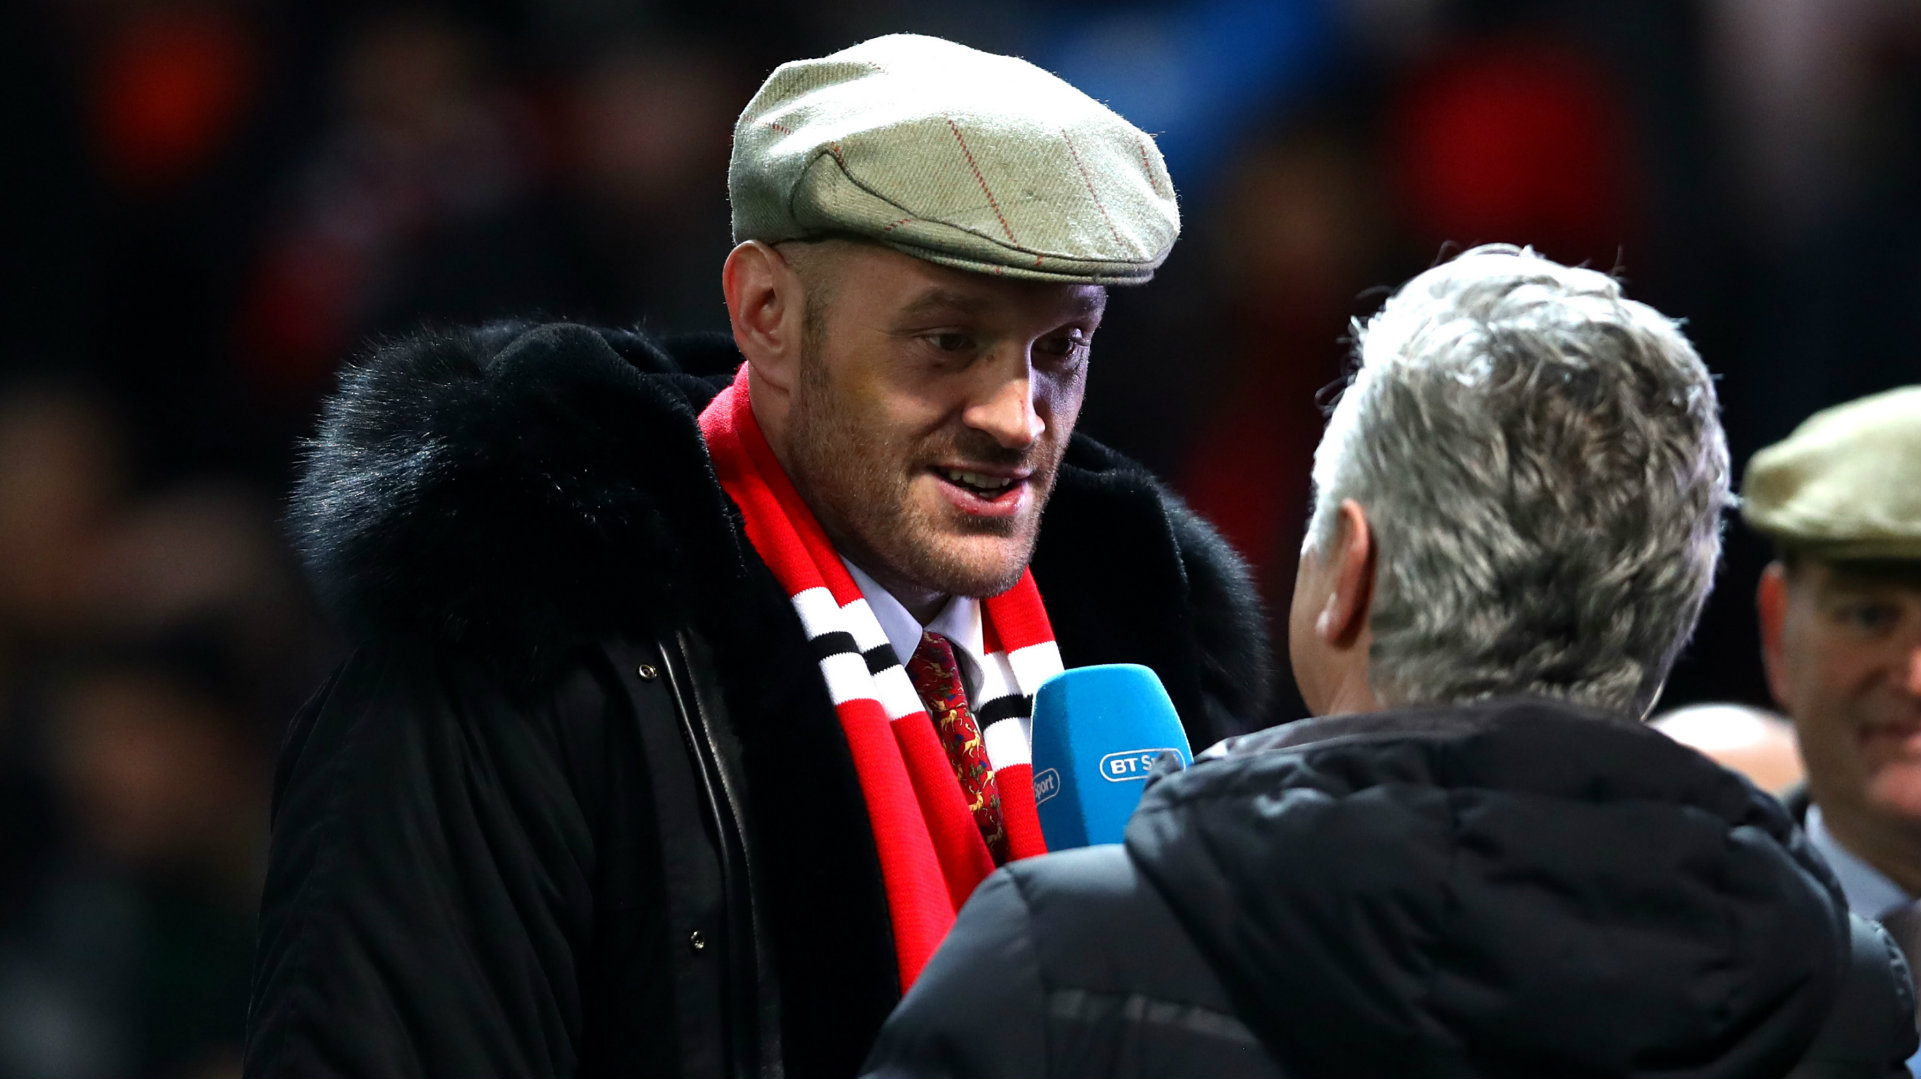 Tyson Fury Man Utd vs Arsenal Premier League 2018-19